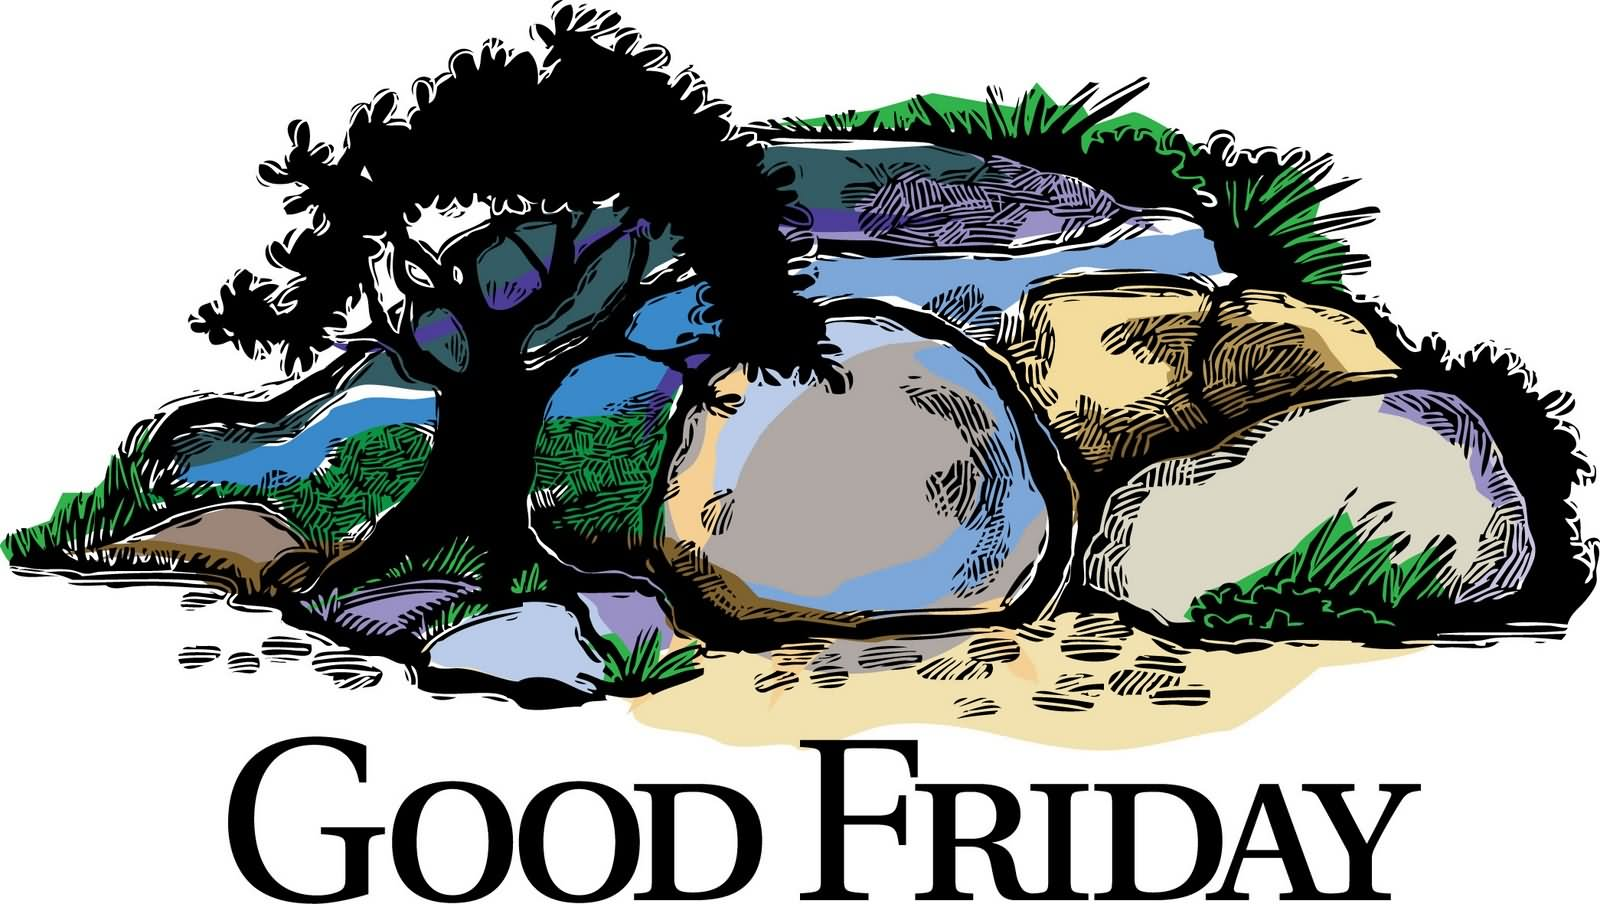 20 very beautiful good friday clipart pictures rh askideas com good friday clip art free good friday clip art black and white